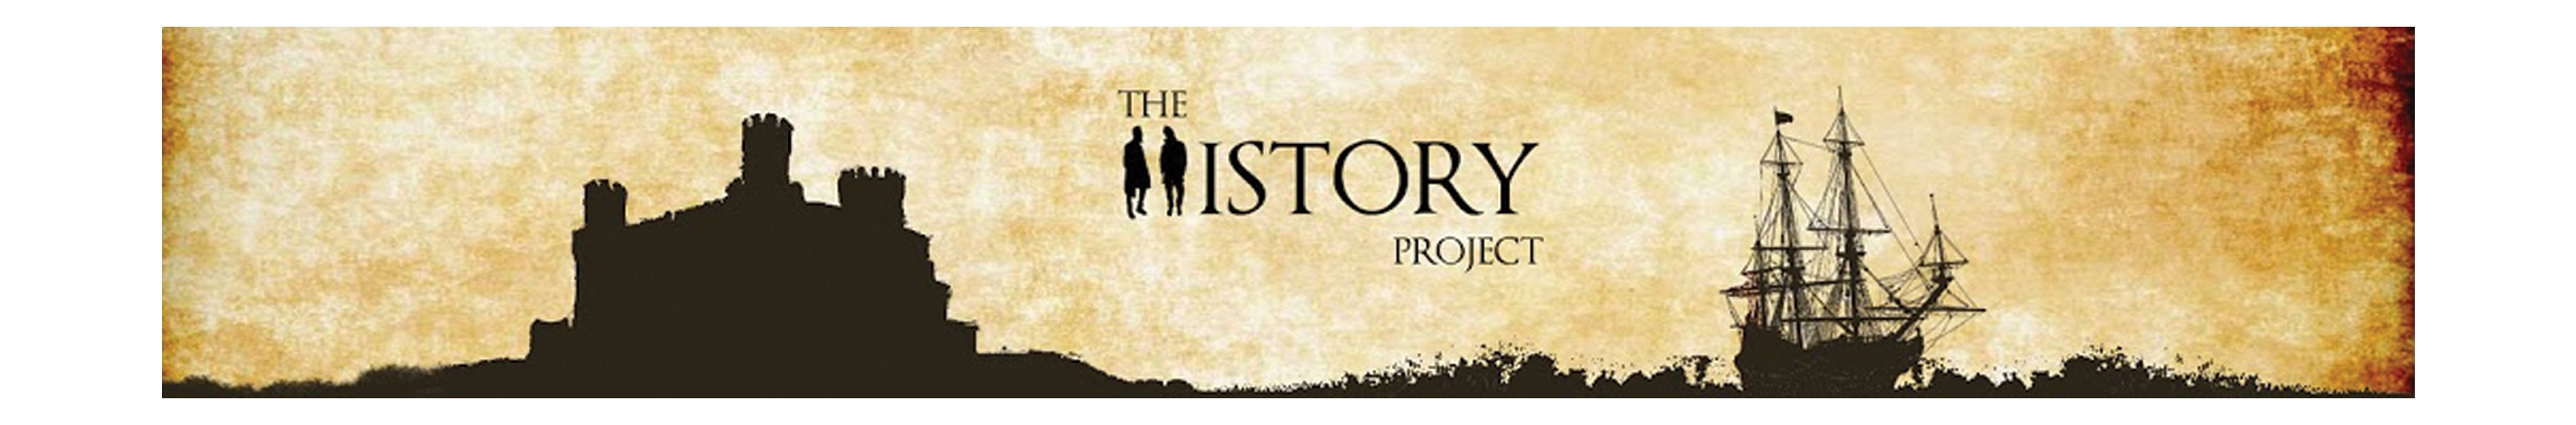 The History Project -  January